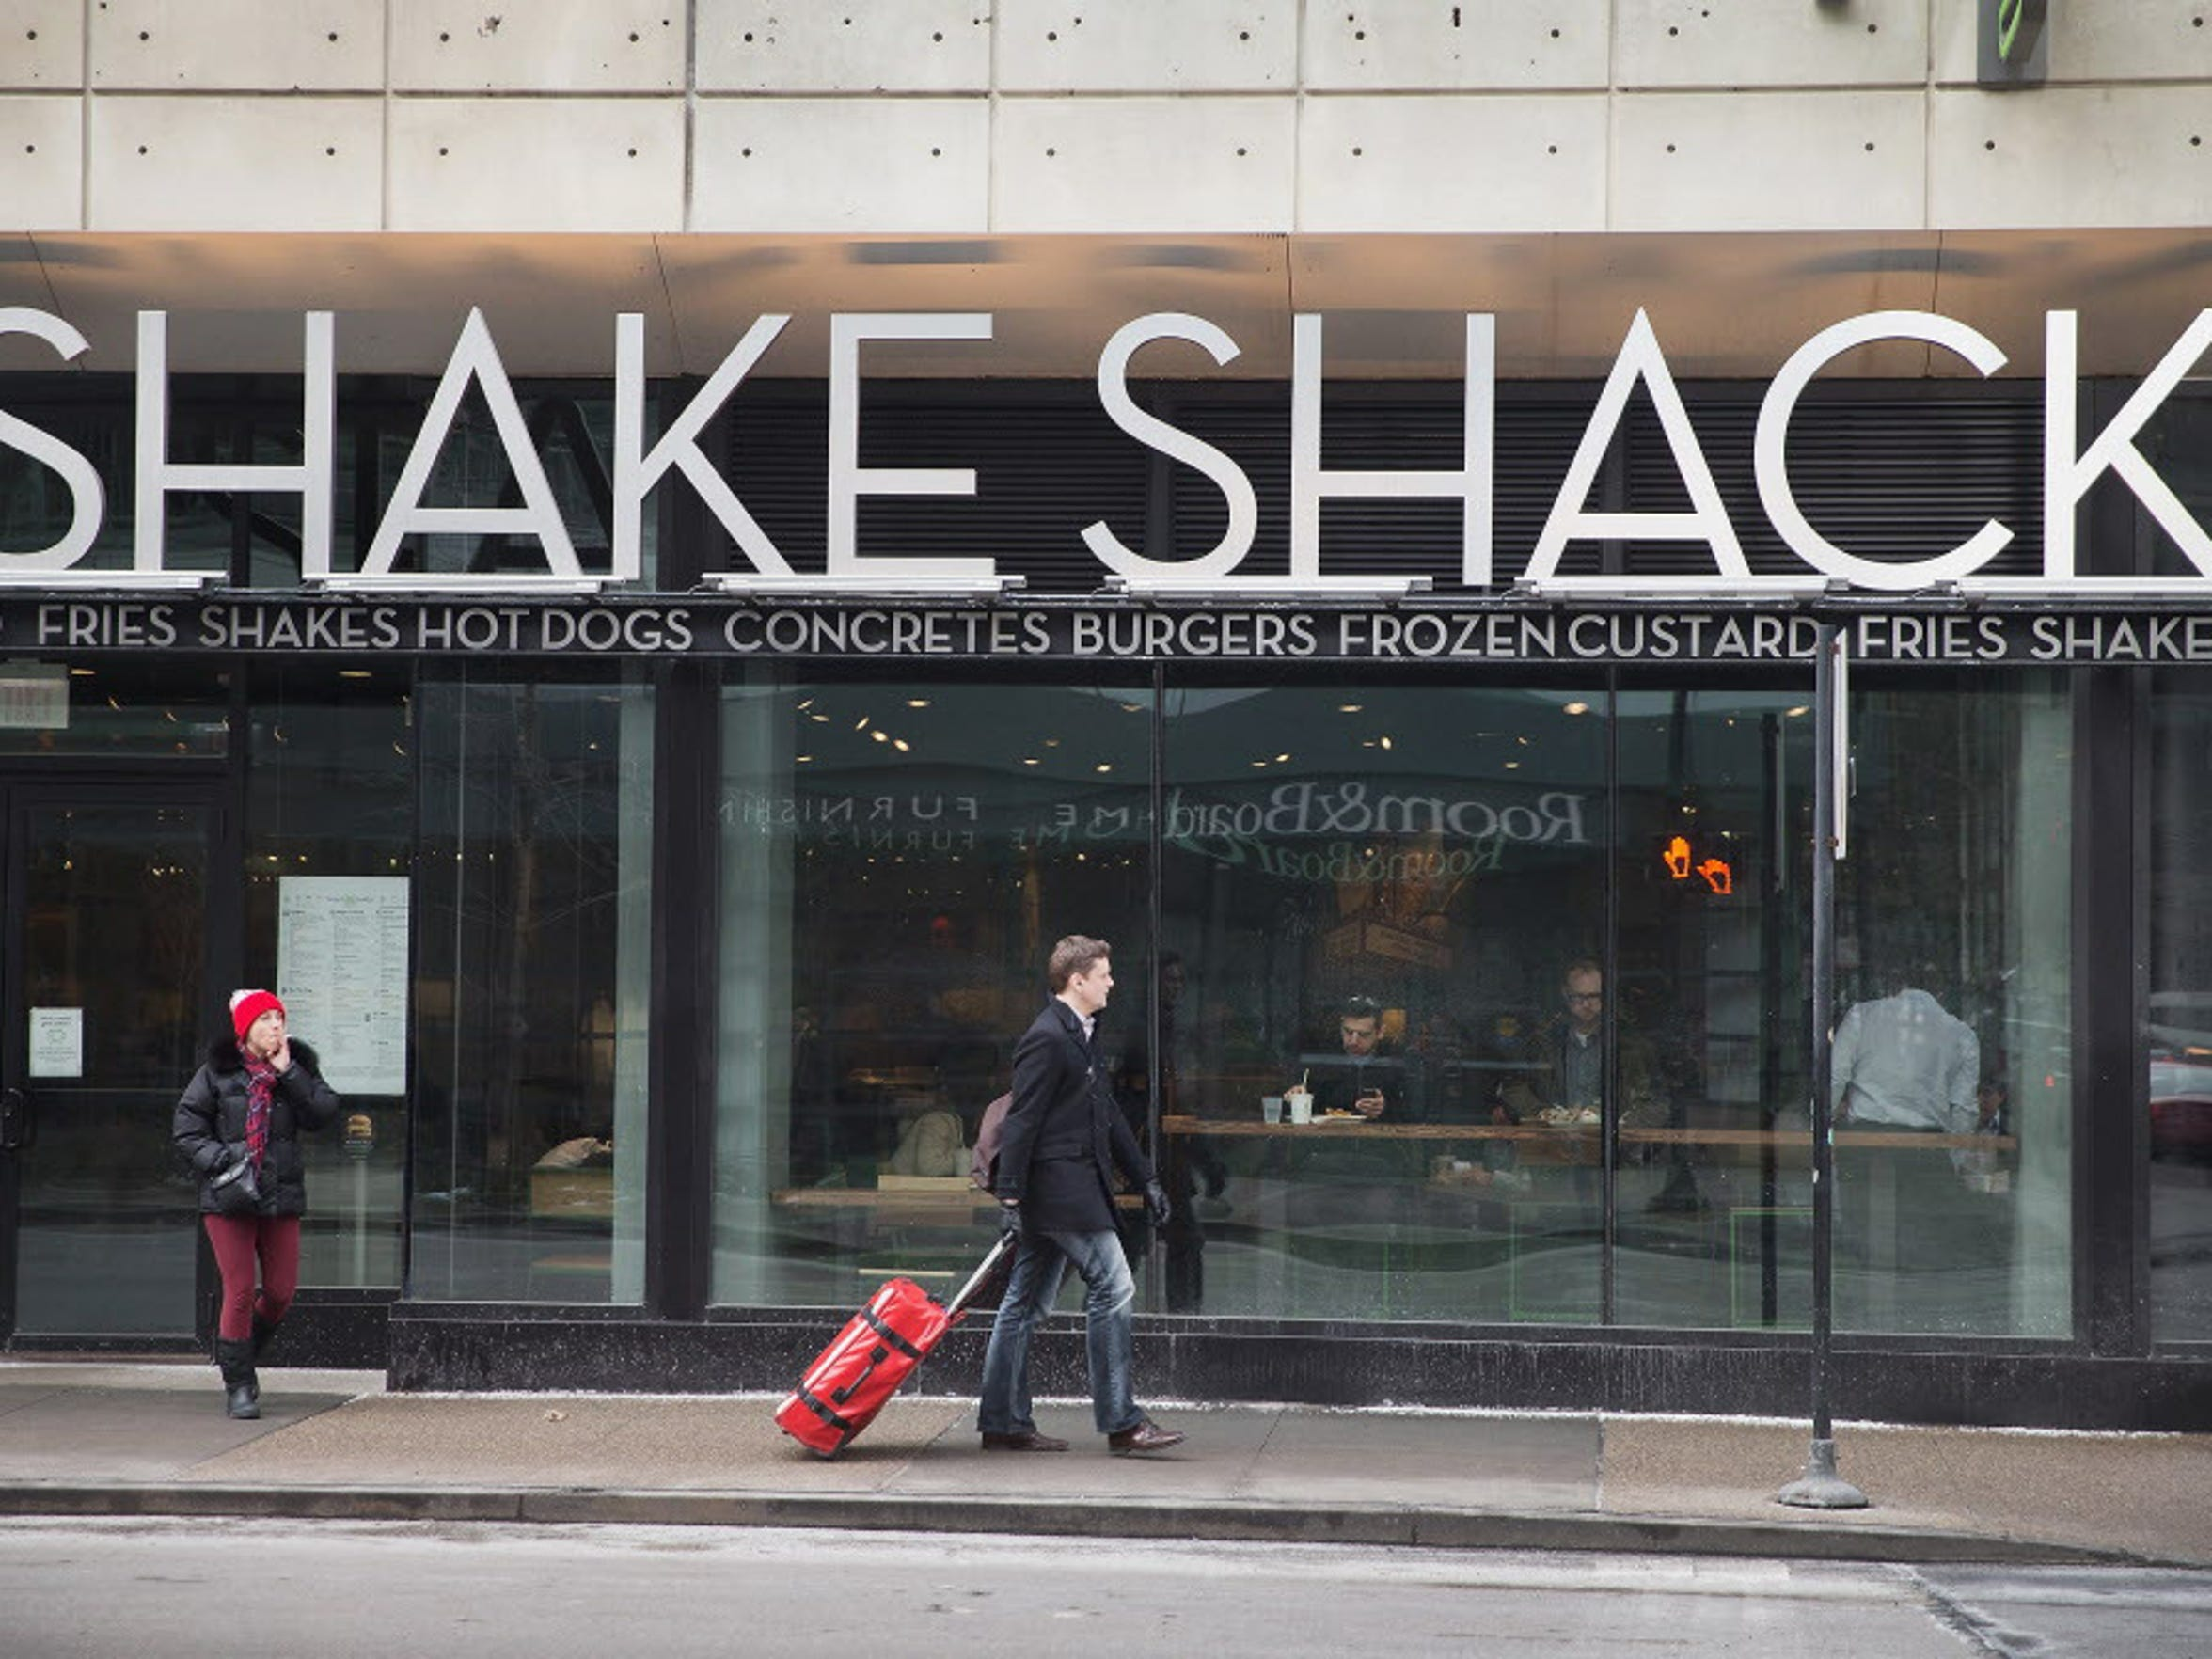 A sign hangs over the entrance of a Shake Shack restaurant in Chicago, Illinois.